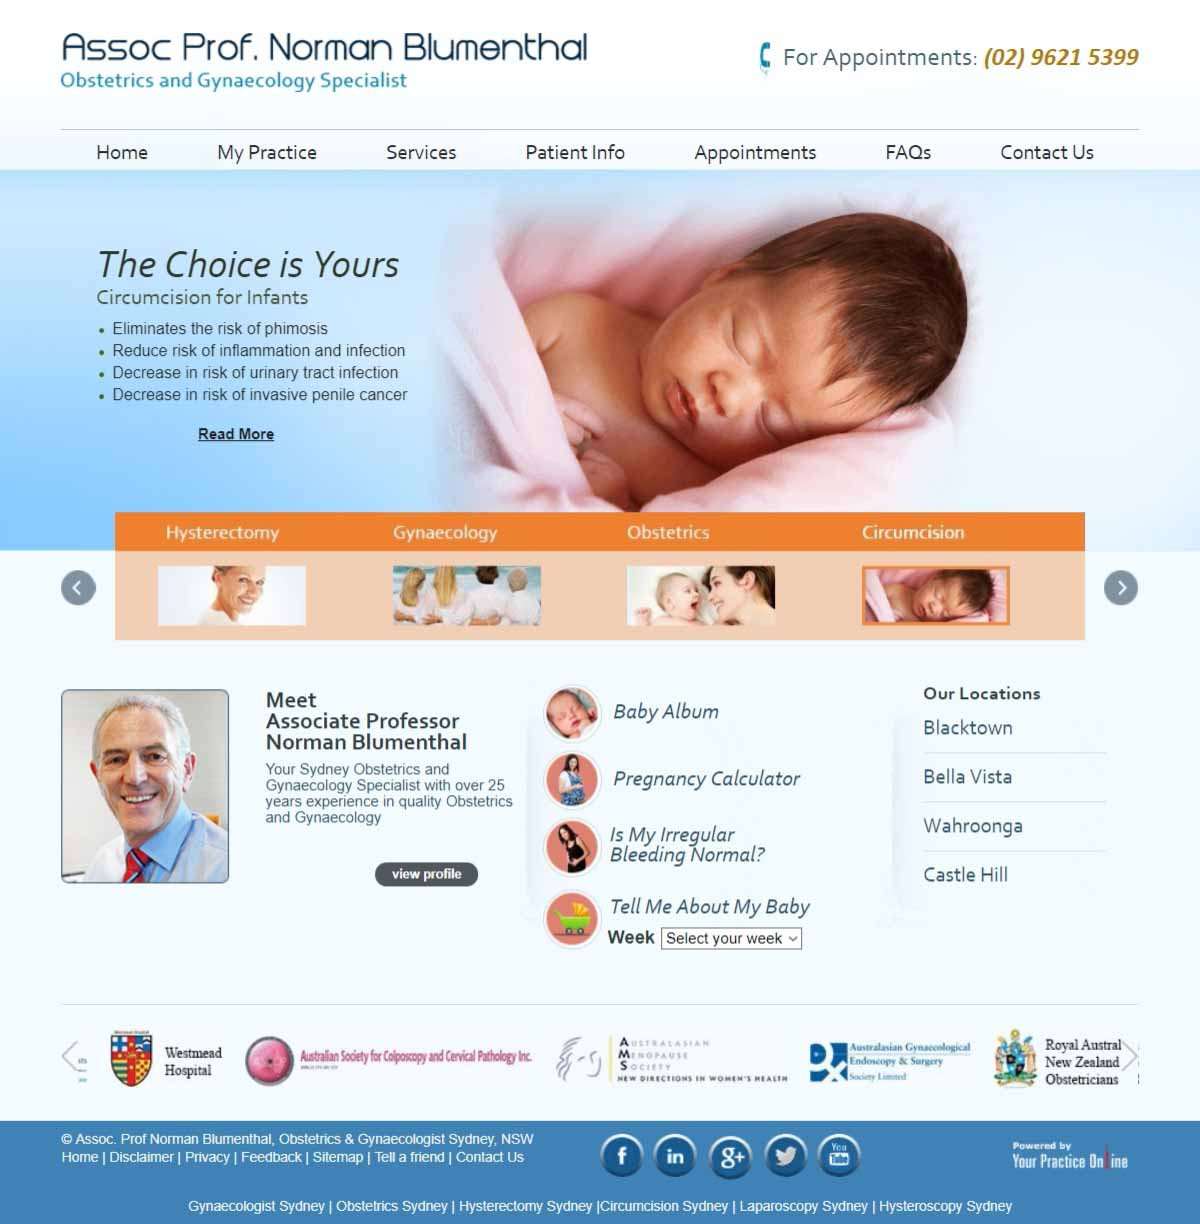 Sydney Obstetrics & Gynaecology Website